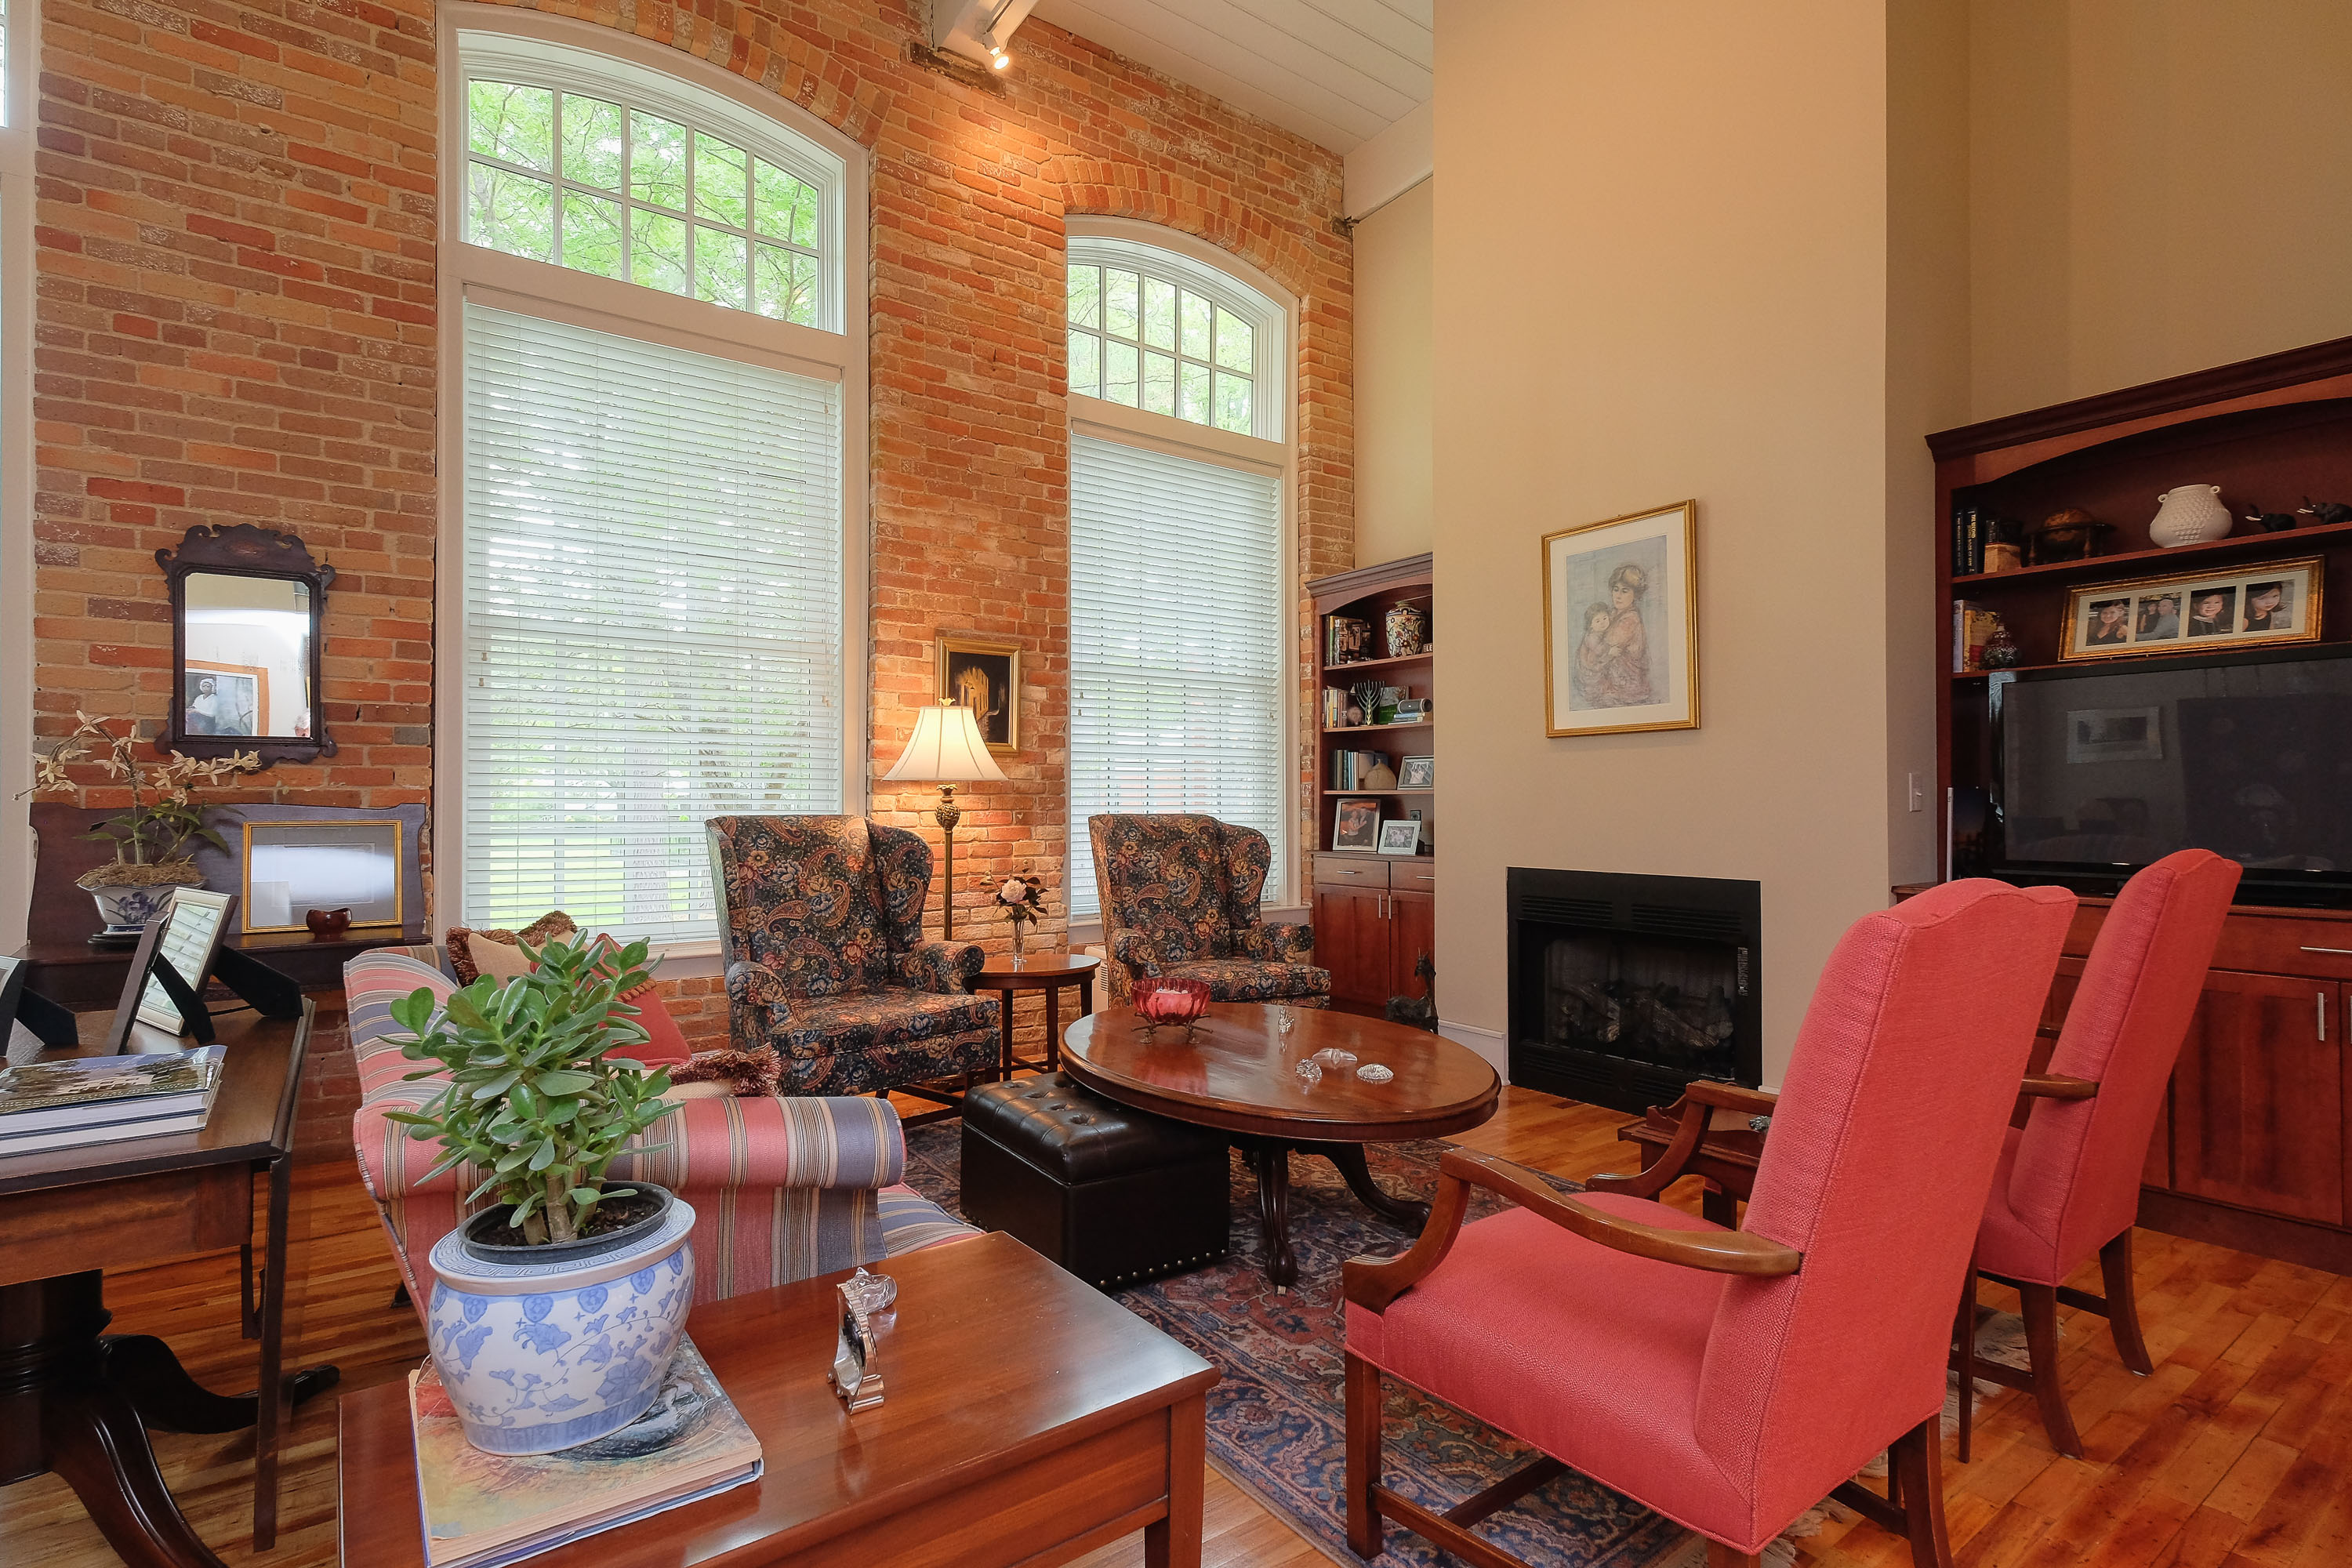 Property For Sale at 304 Edenton Cotton Mill